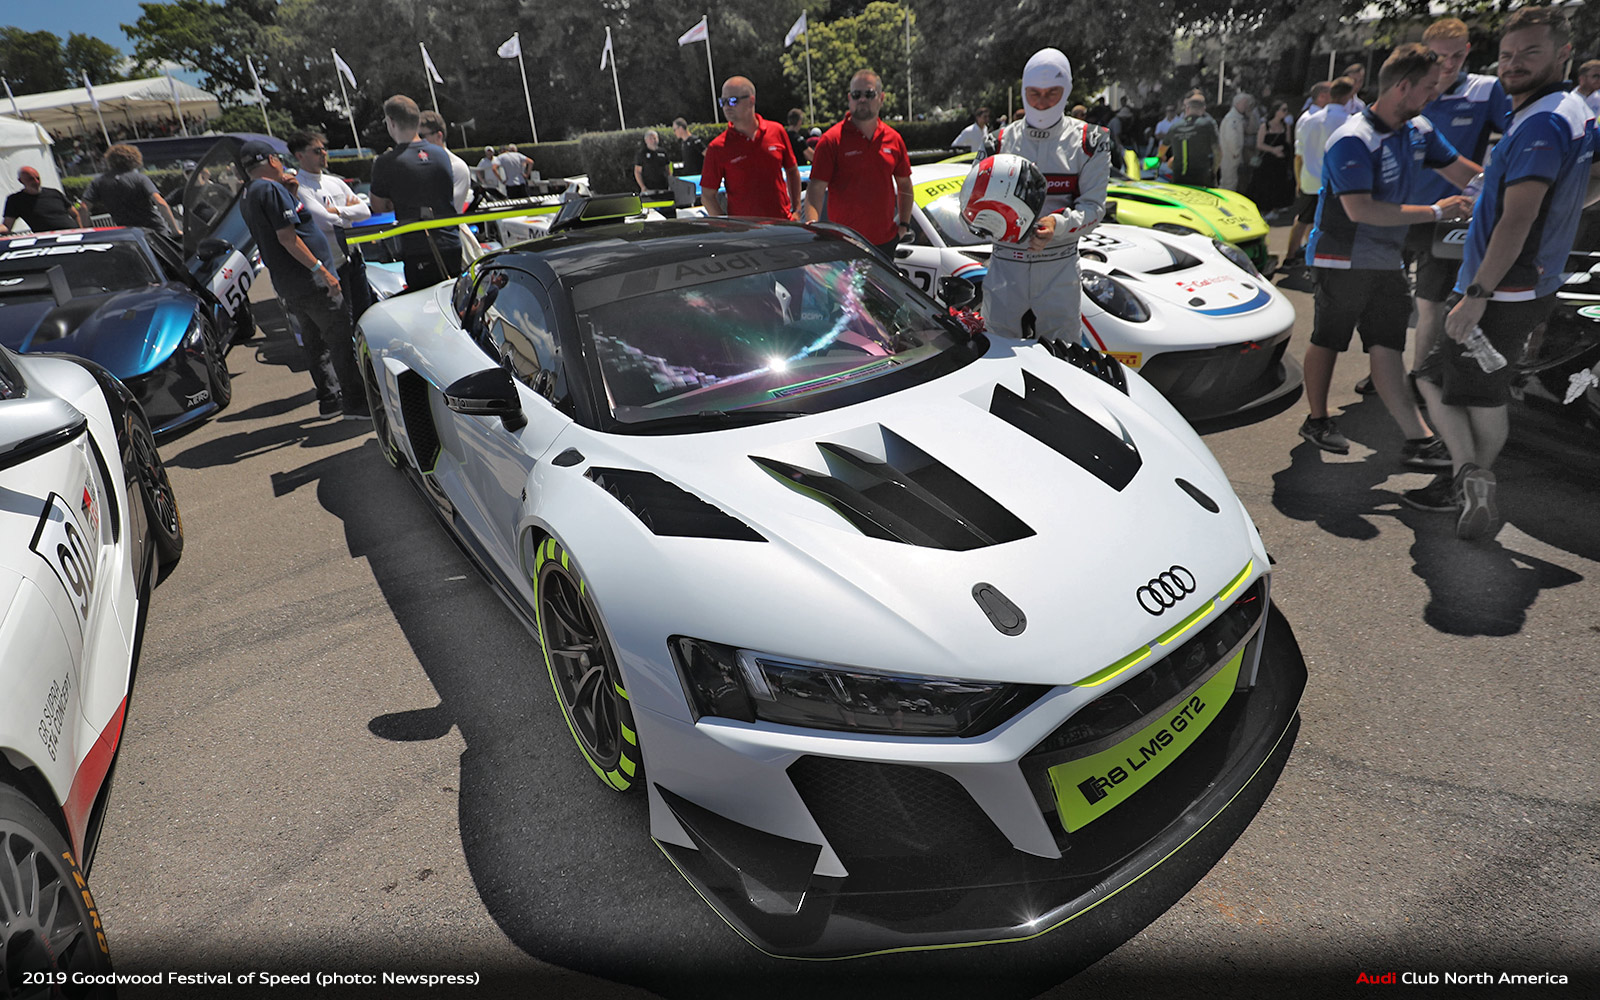 Gallery: 2019 Goodwood Festival of Speed